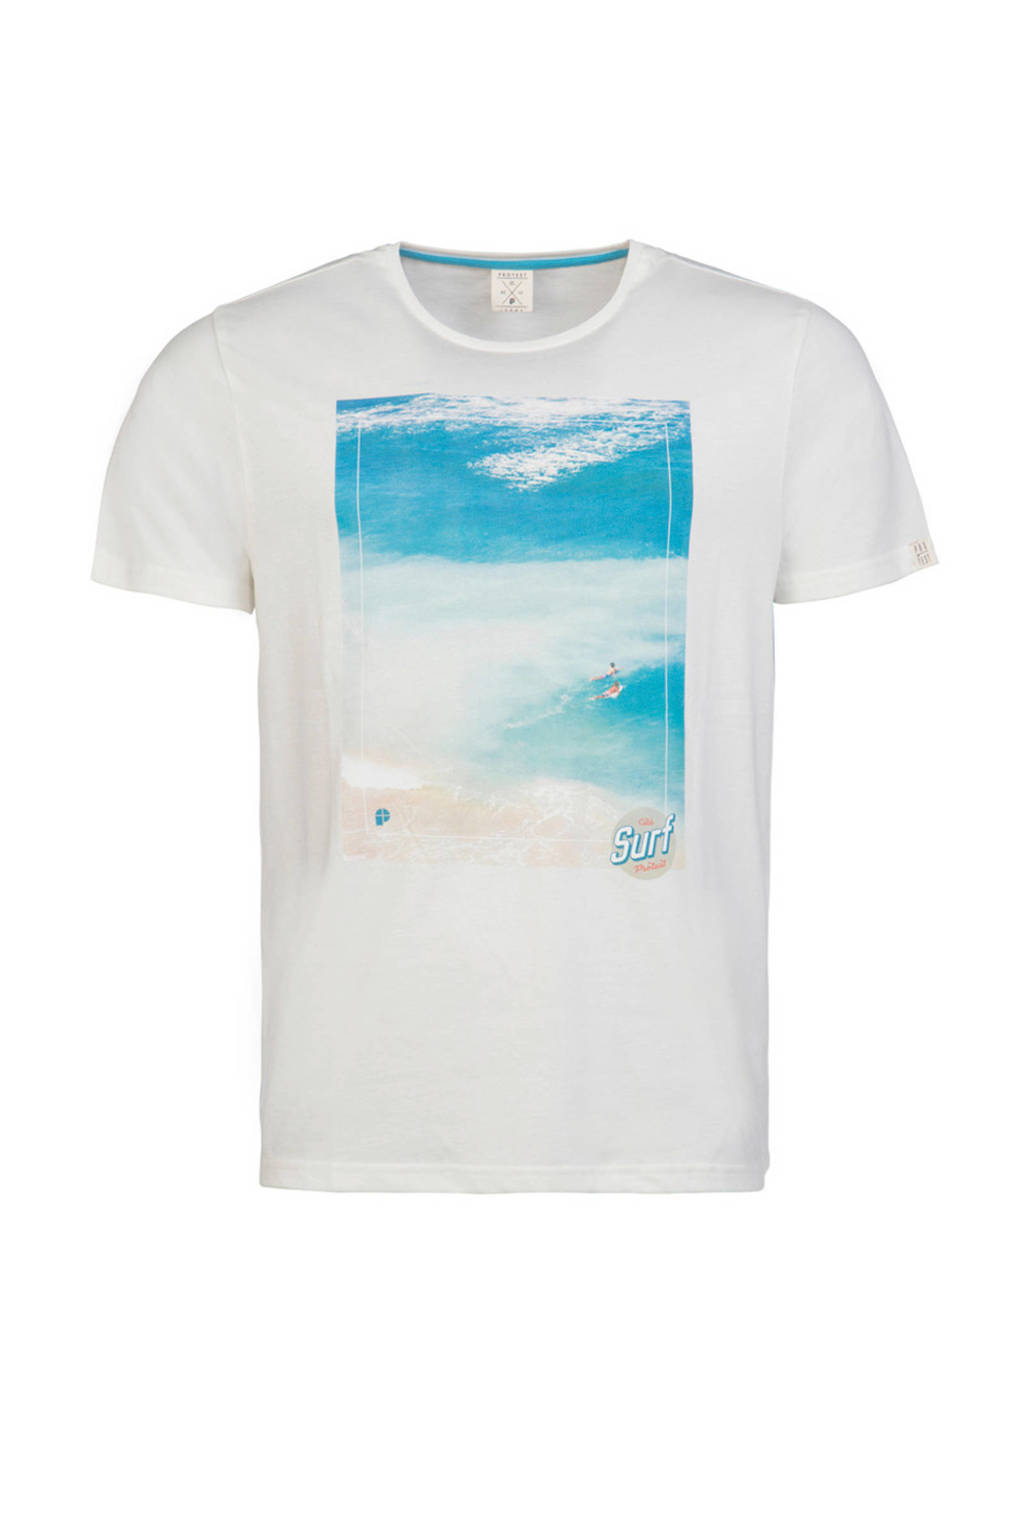 Protest T-shirt, Wit/blauw